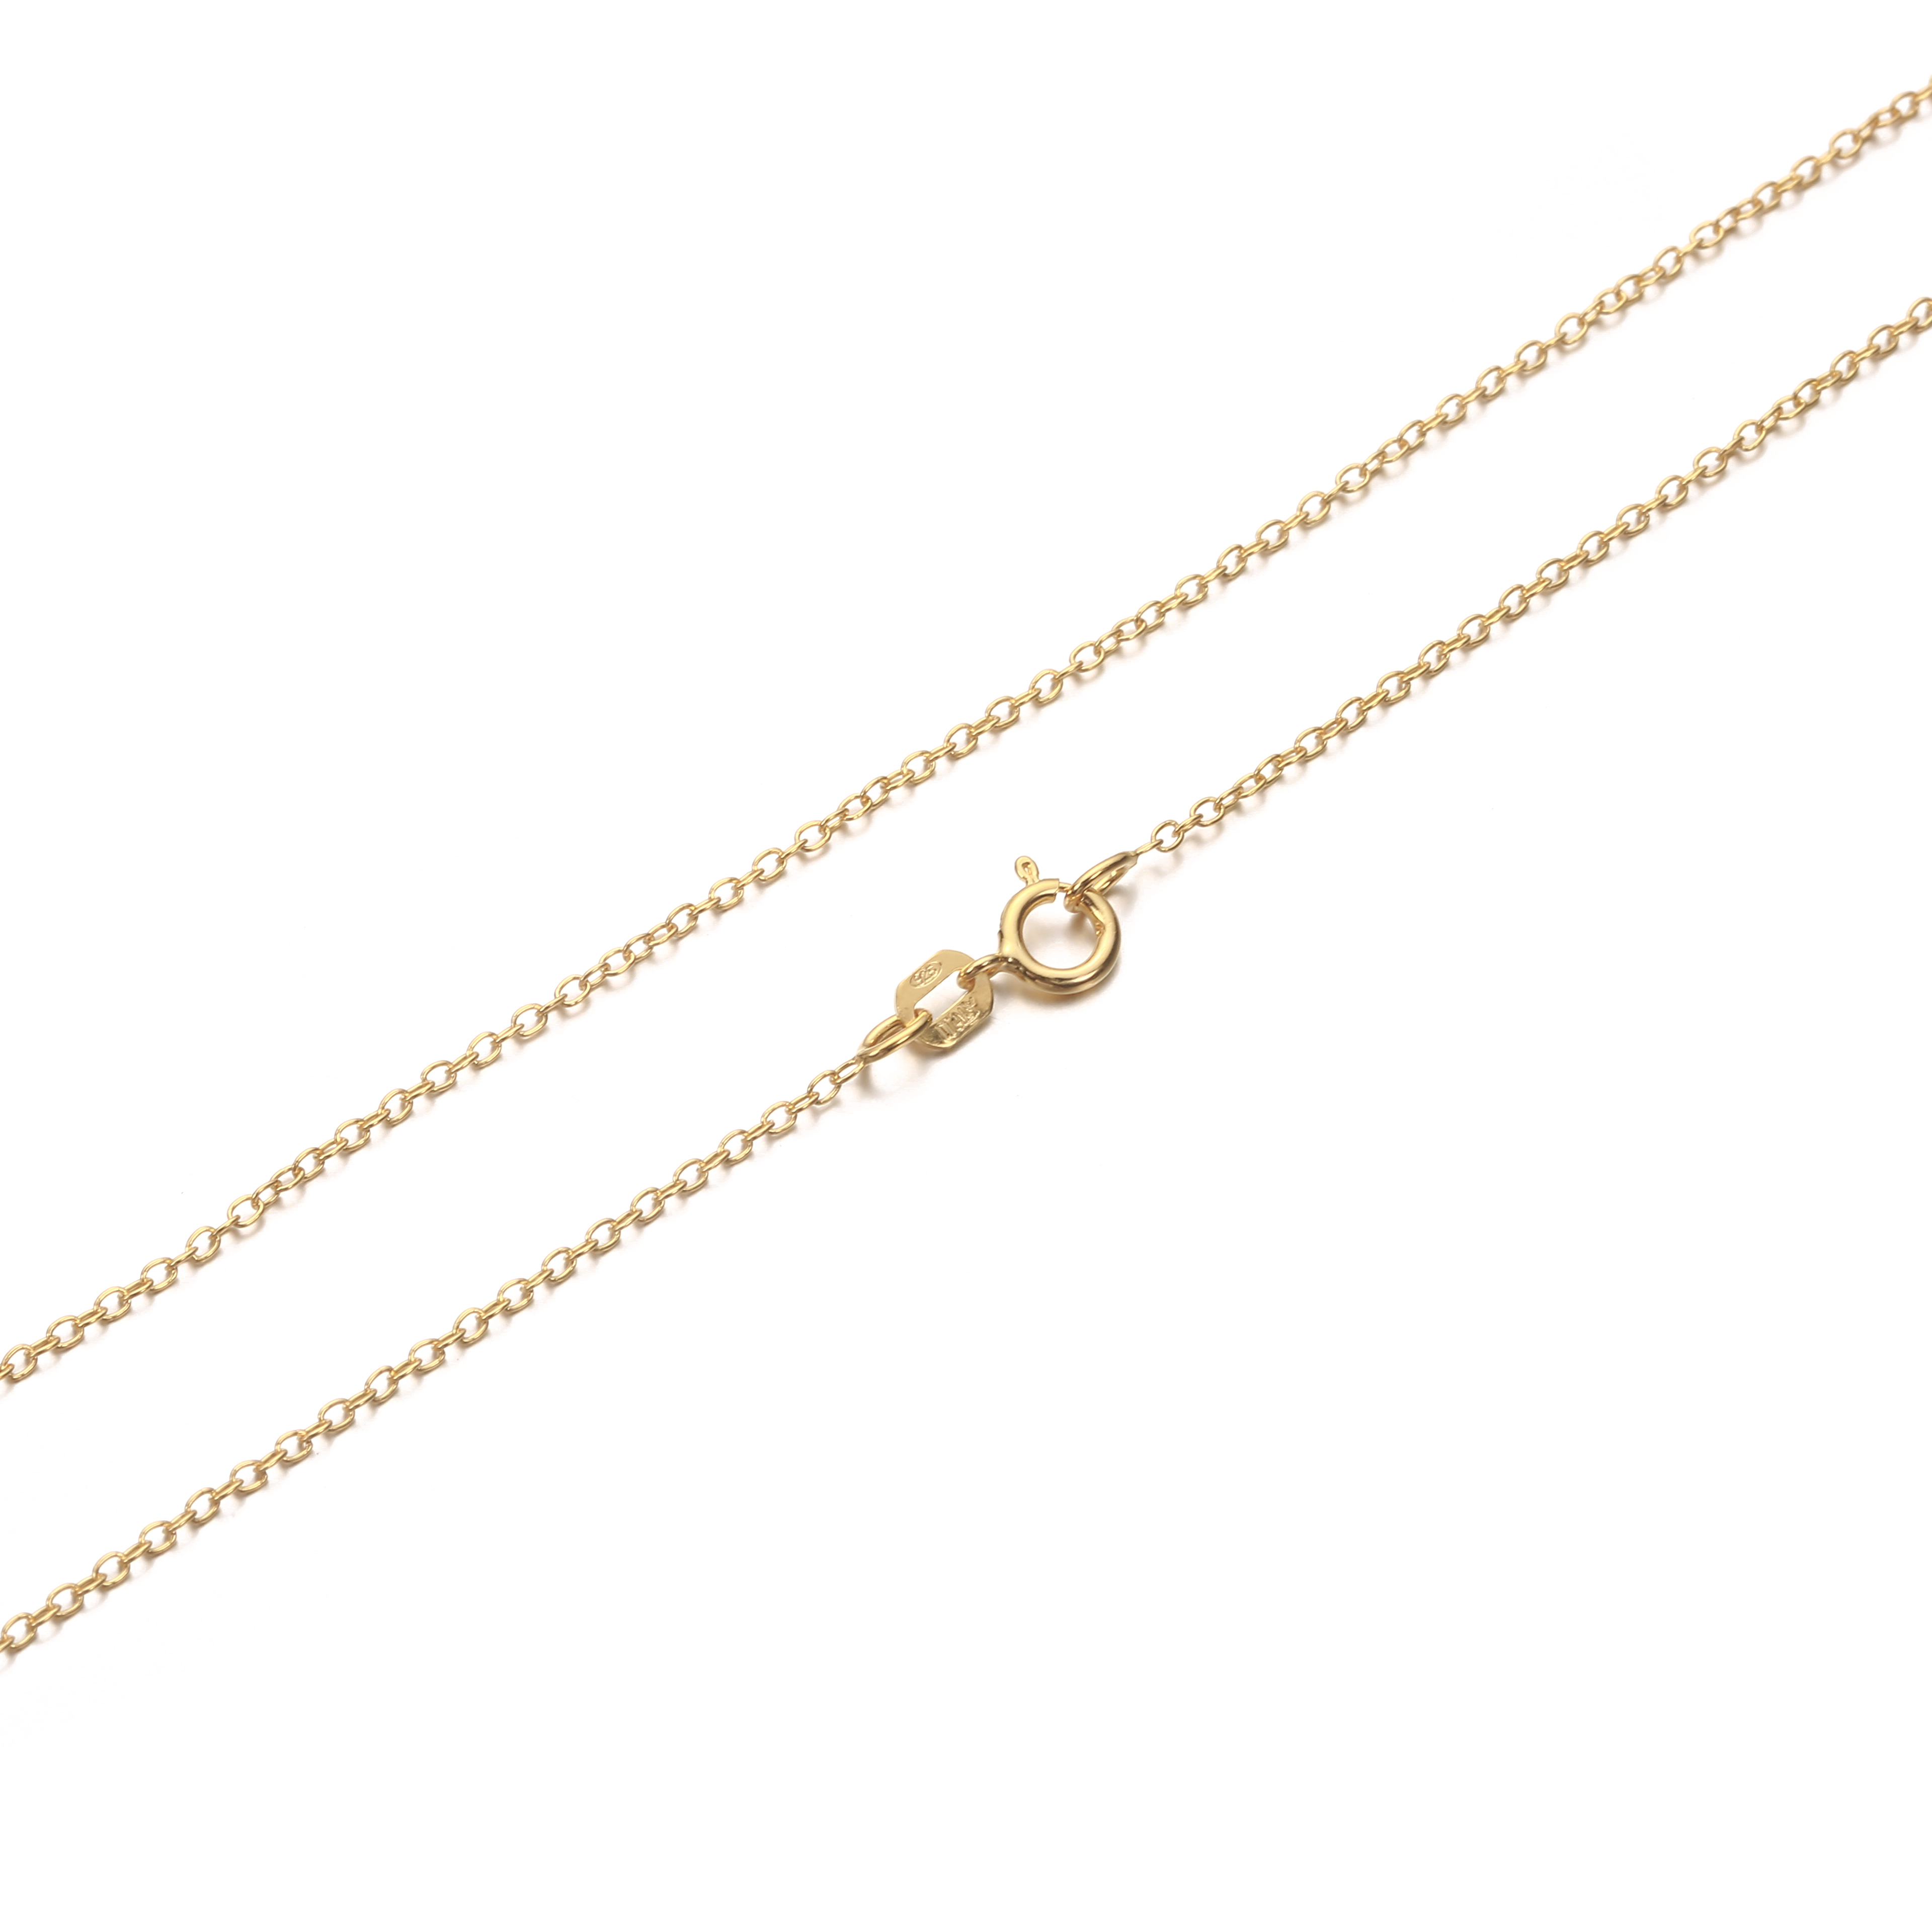 Details About 14K Gold Plated 925 Sterling Silver Cable Chain Necklace (View 9 of 25)